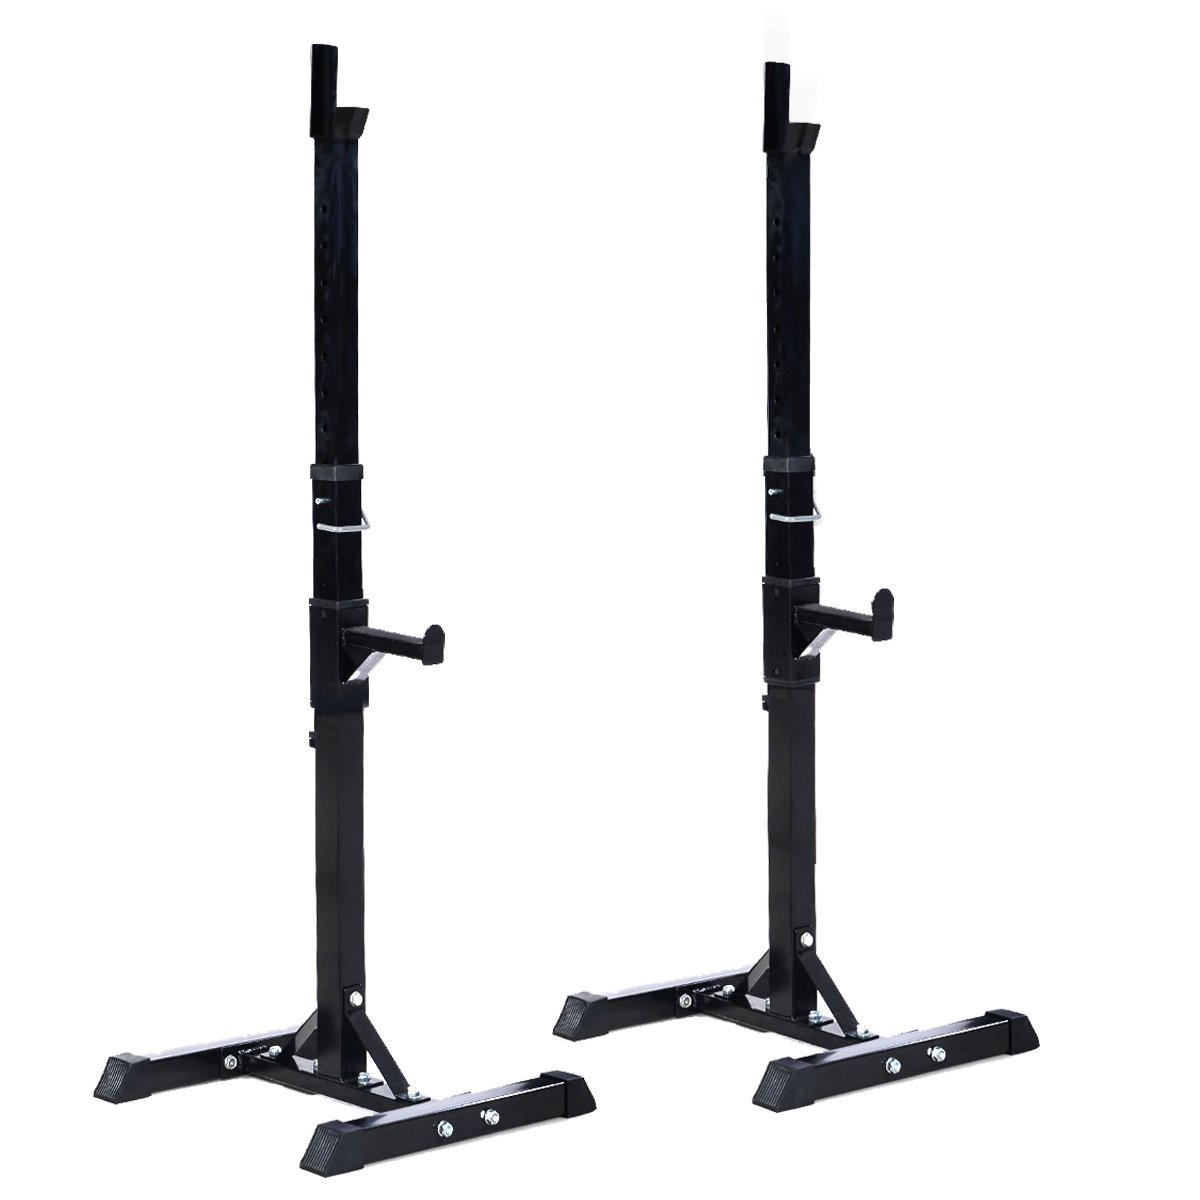 Goplus Pair of Adjustable Standard Squat Stands Solid Steel Barbell Dumbbell Power Rack Home Gym by Goplus